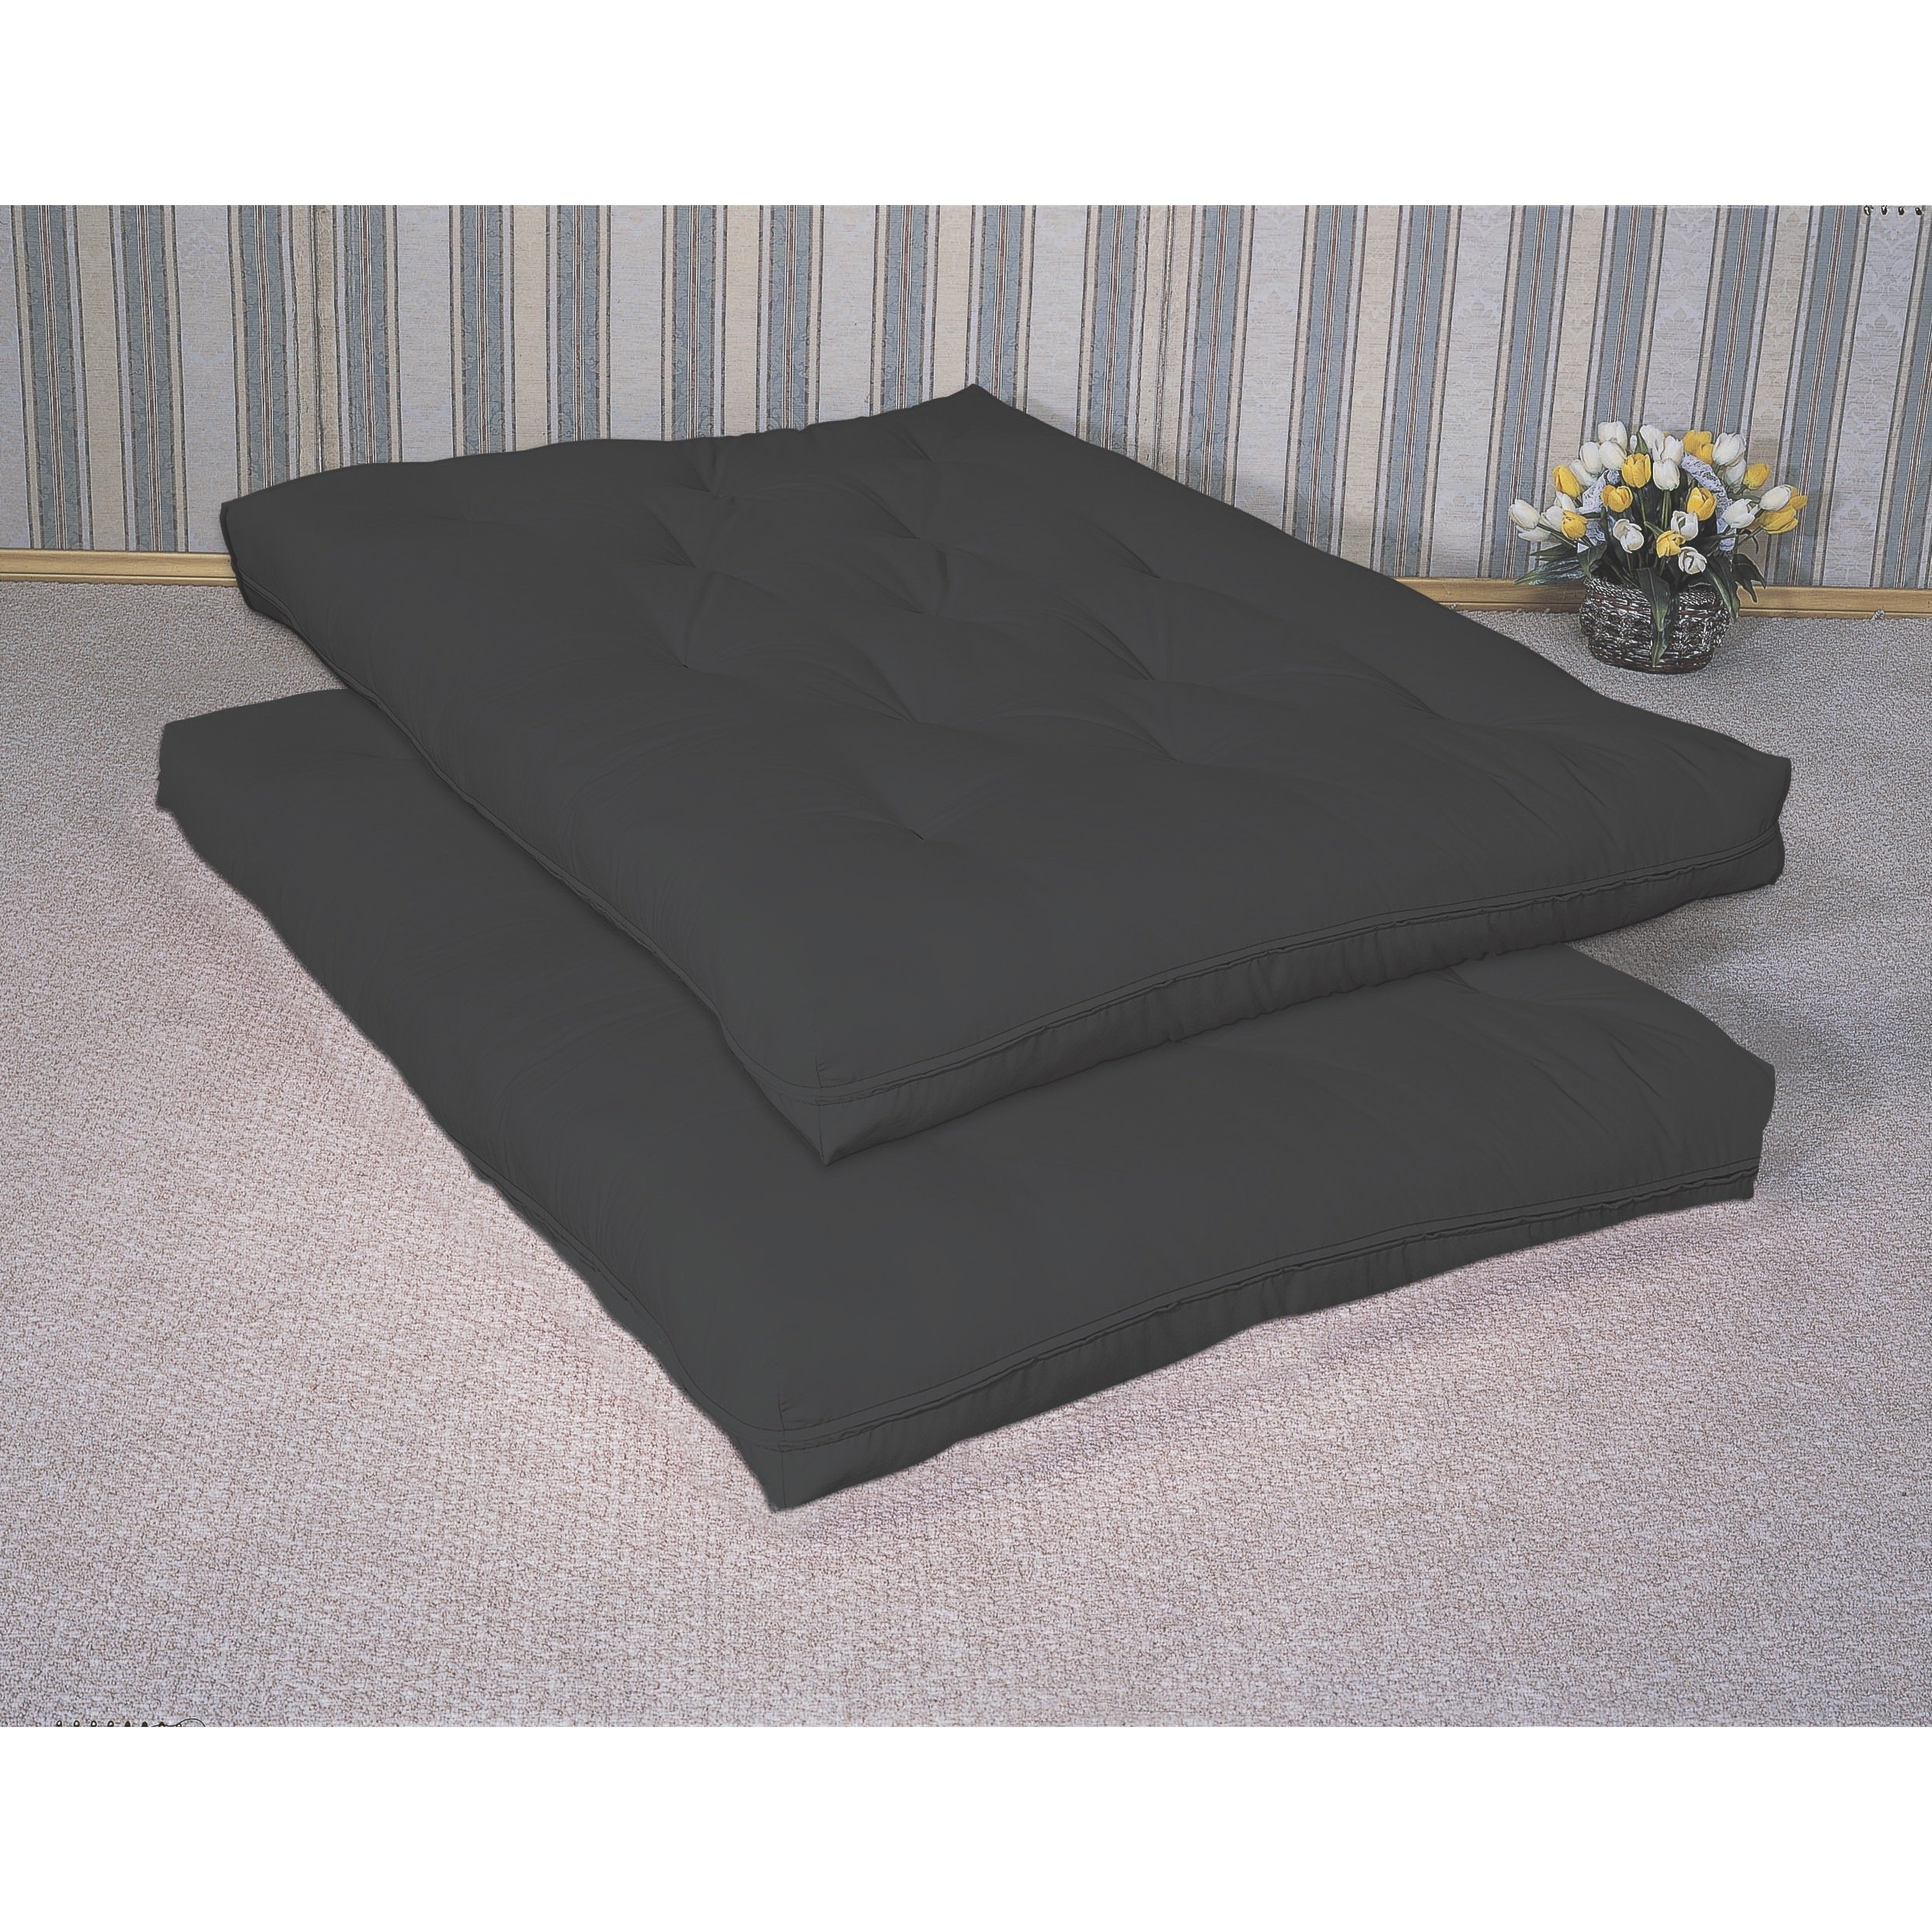 Deluxe Futon Pad Black by Coaster Home Furnishings